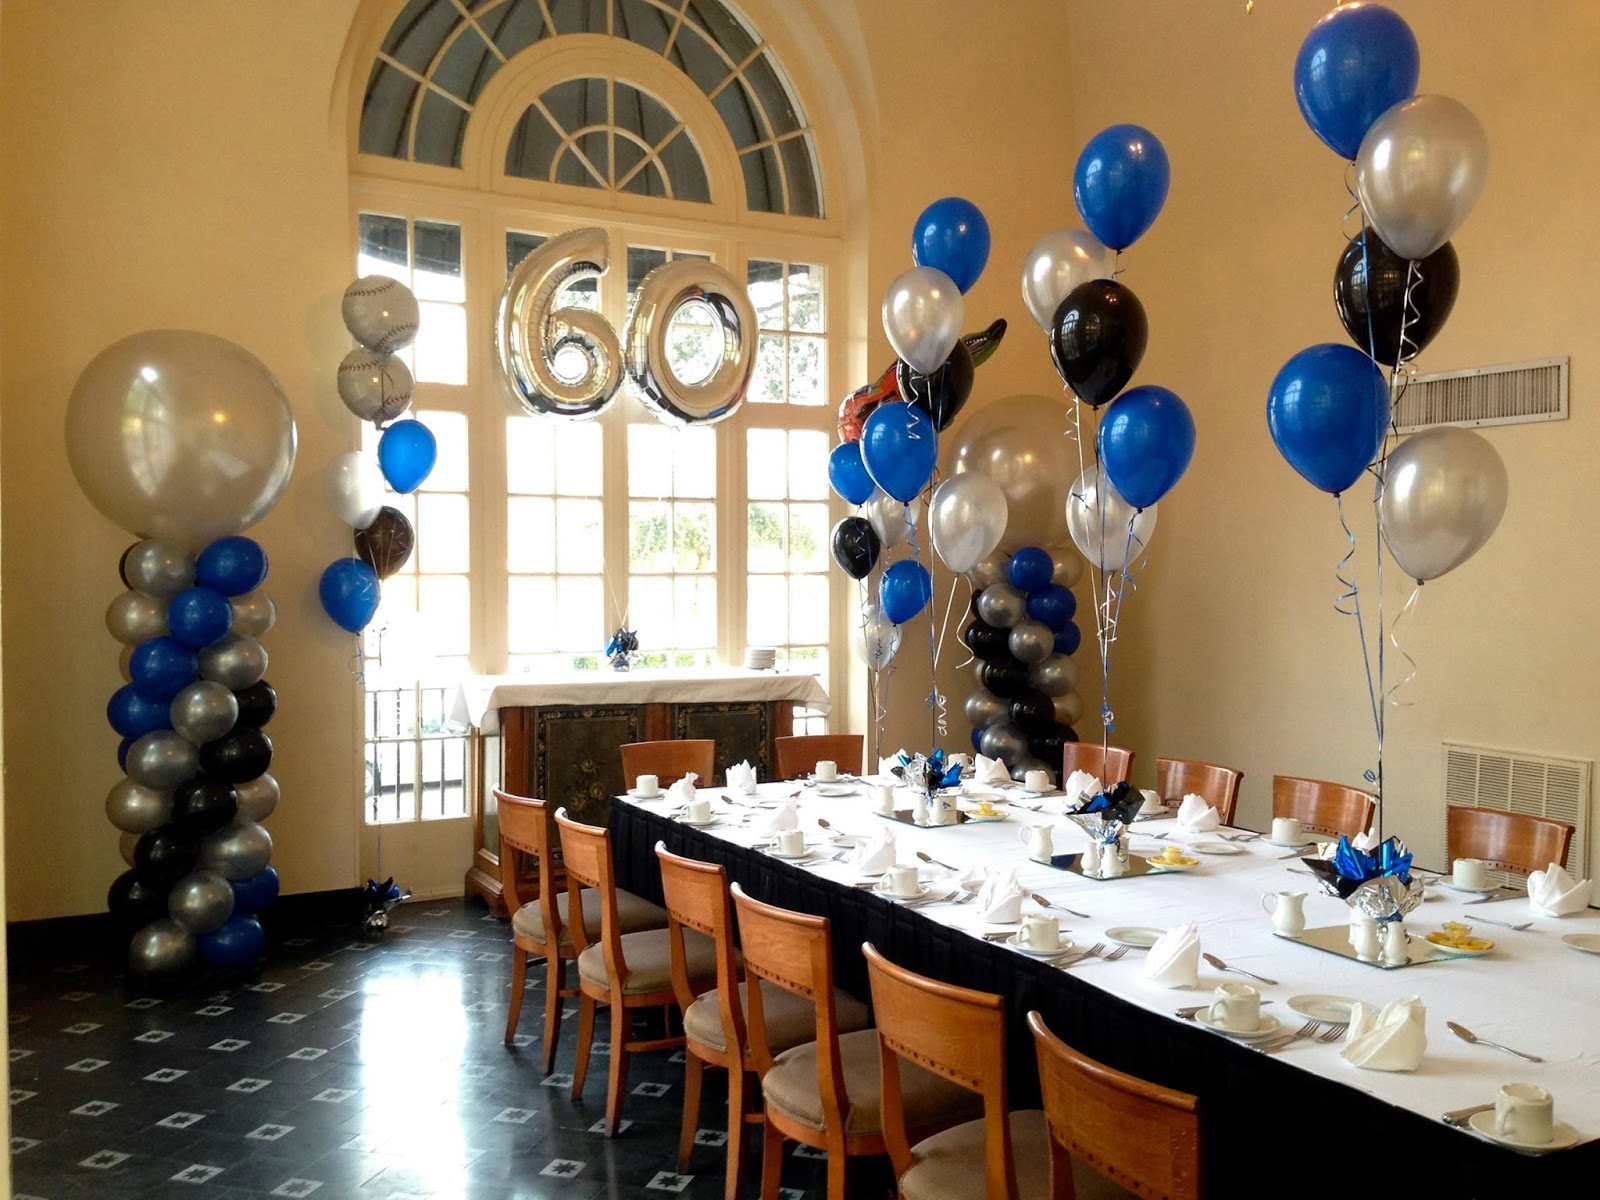 Party people event decorating company 60th birthday party for 60th anniversary decoration ideas